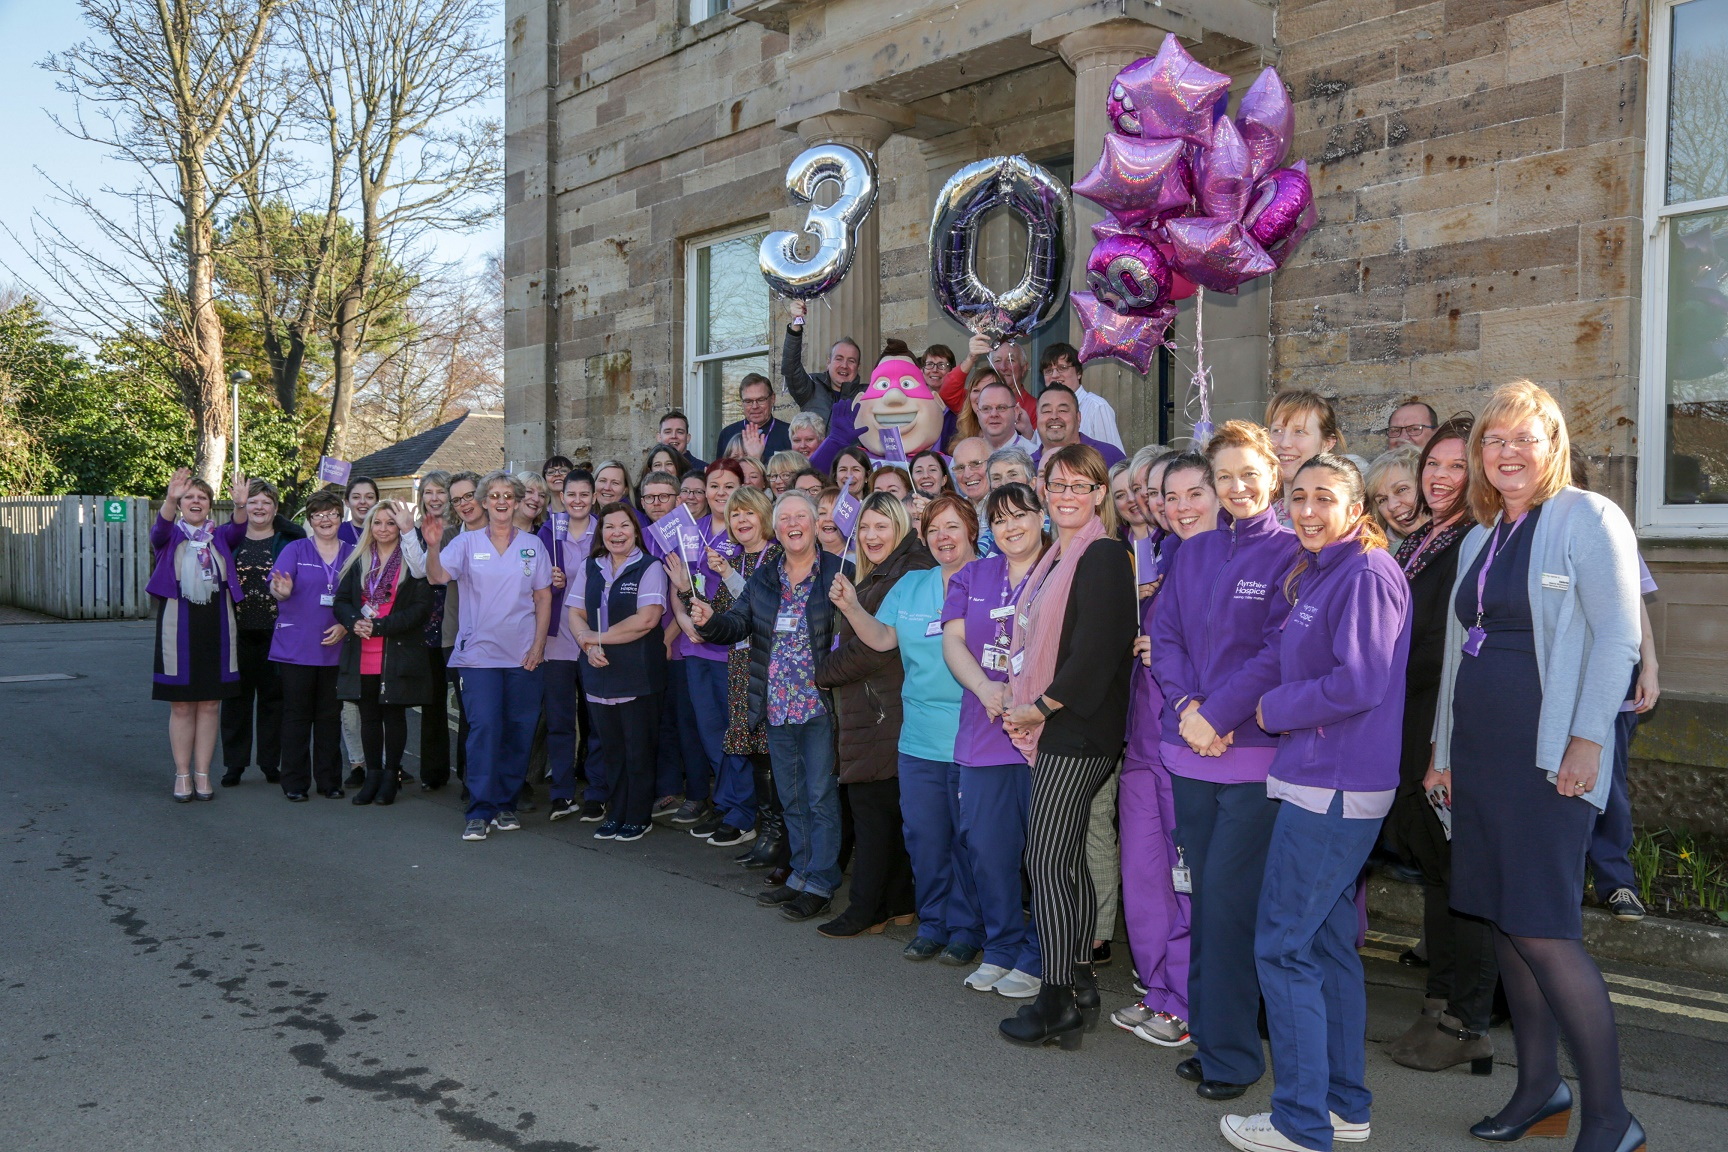 Scottish hospice marks 30th anniversary with thank you message to supporters